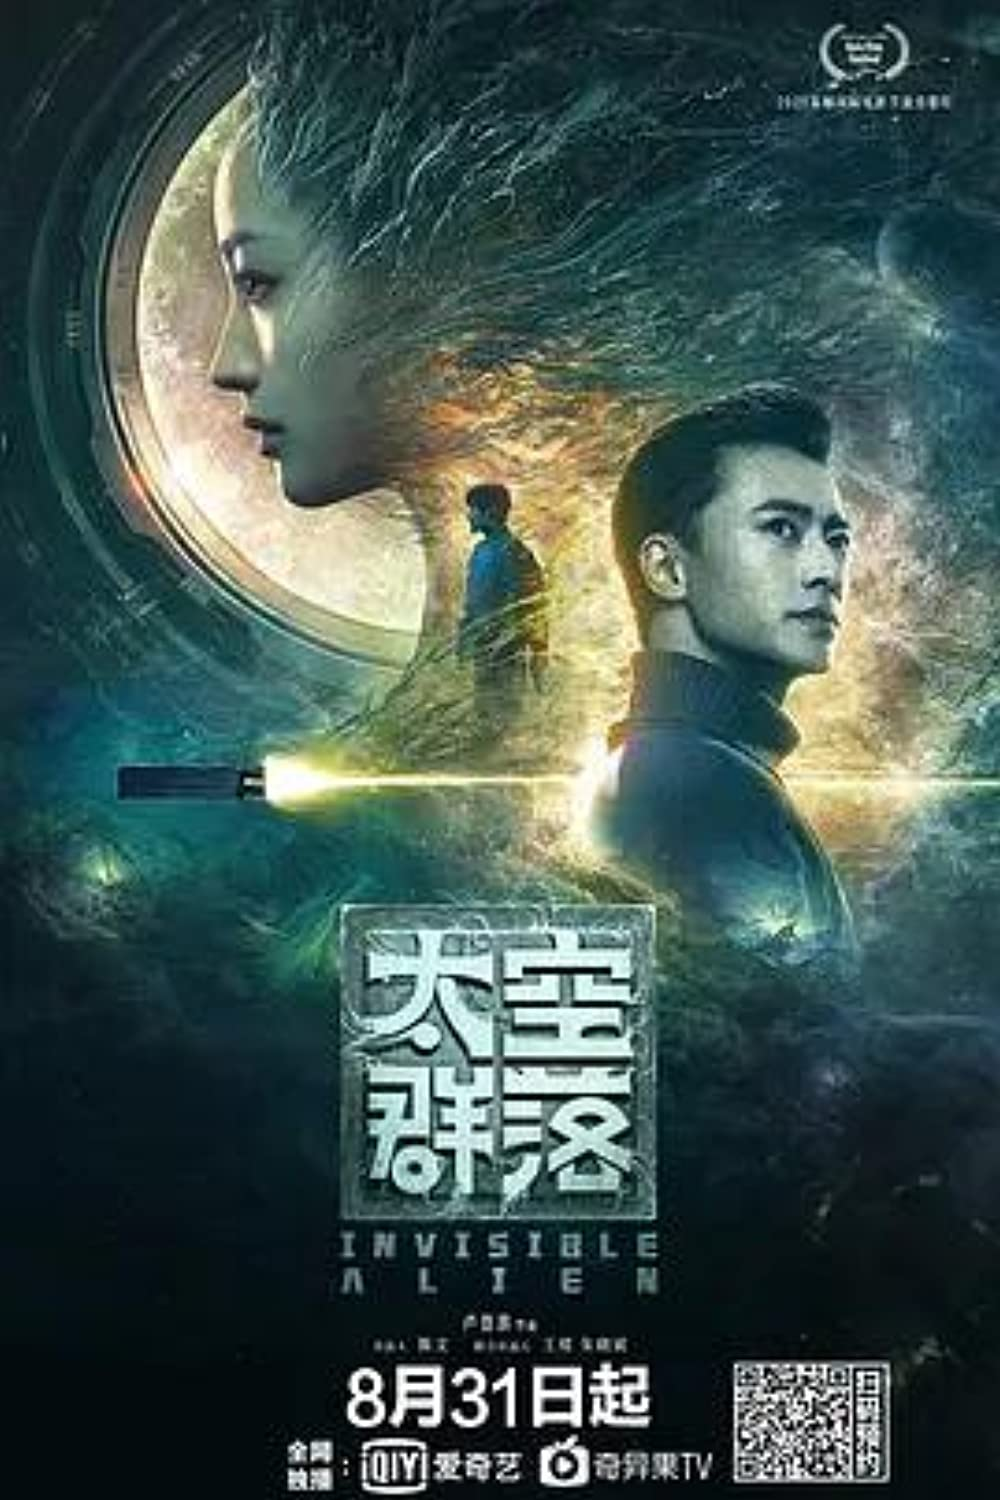 Download Invisible Alien (2021) Tamil Dubbed (Voice Over) & English [Dual Audio] WebRip 720p [1XBET] Full Movie Online On 1xcinema.com